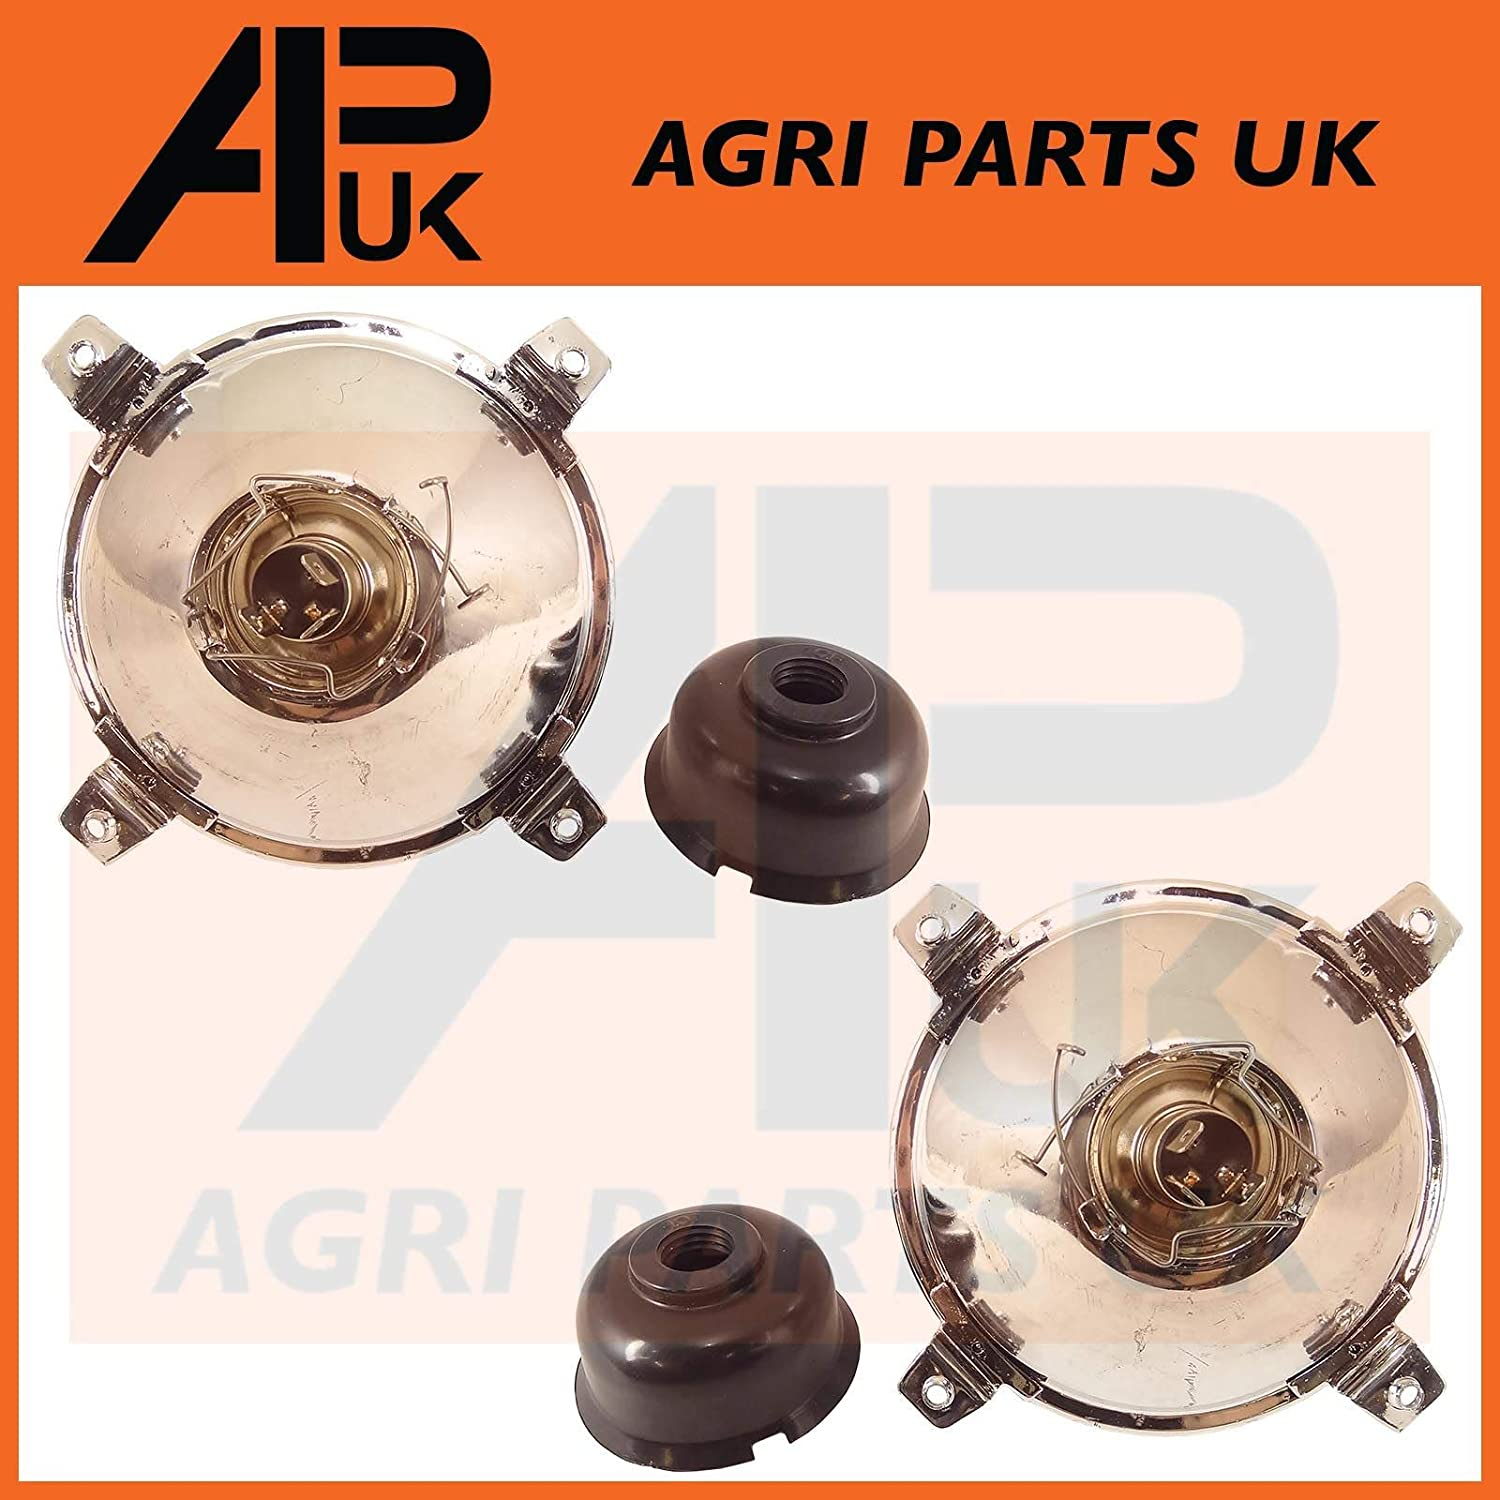 APUK PAIR of Headlight Headlamp Cowls Compatible with Ford New Holland 4610 5610 6610 7610 7810 Tractor